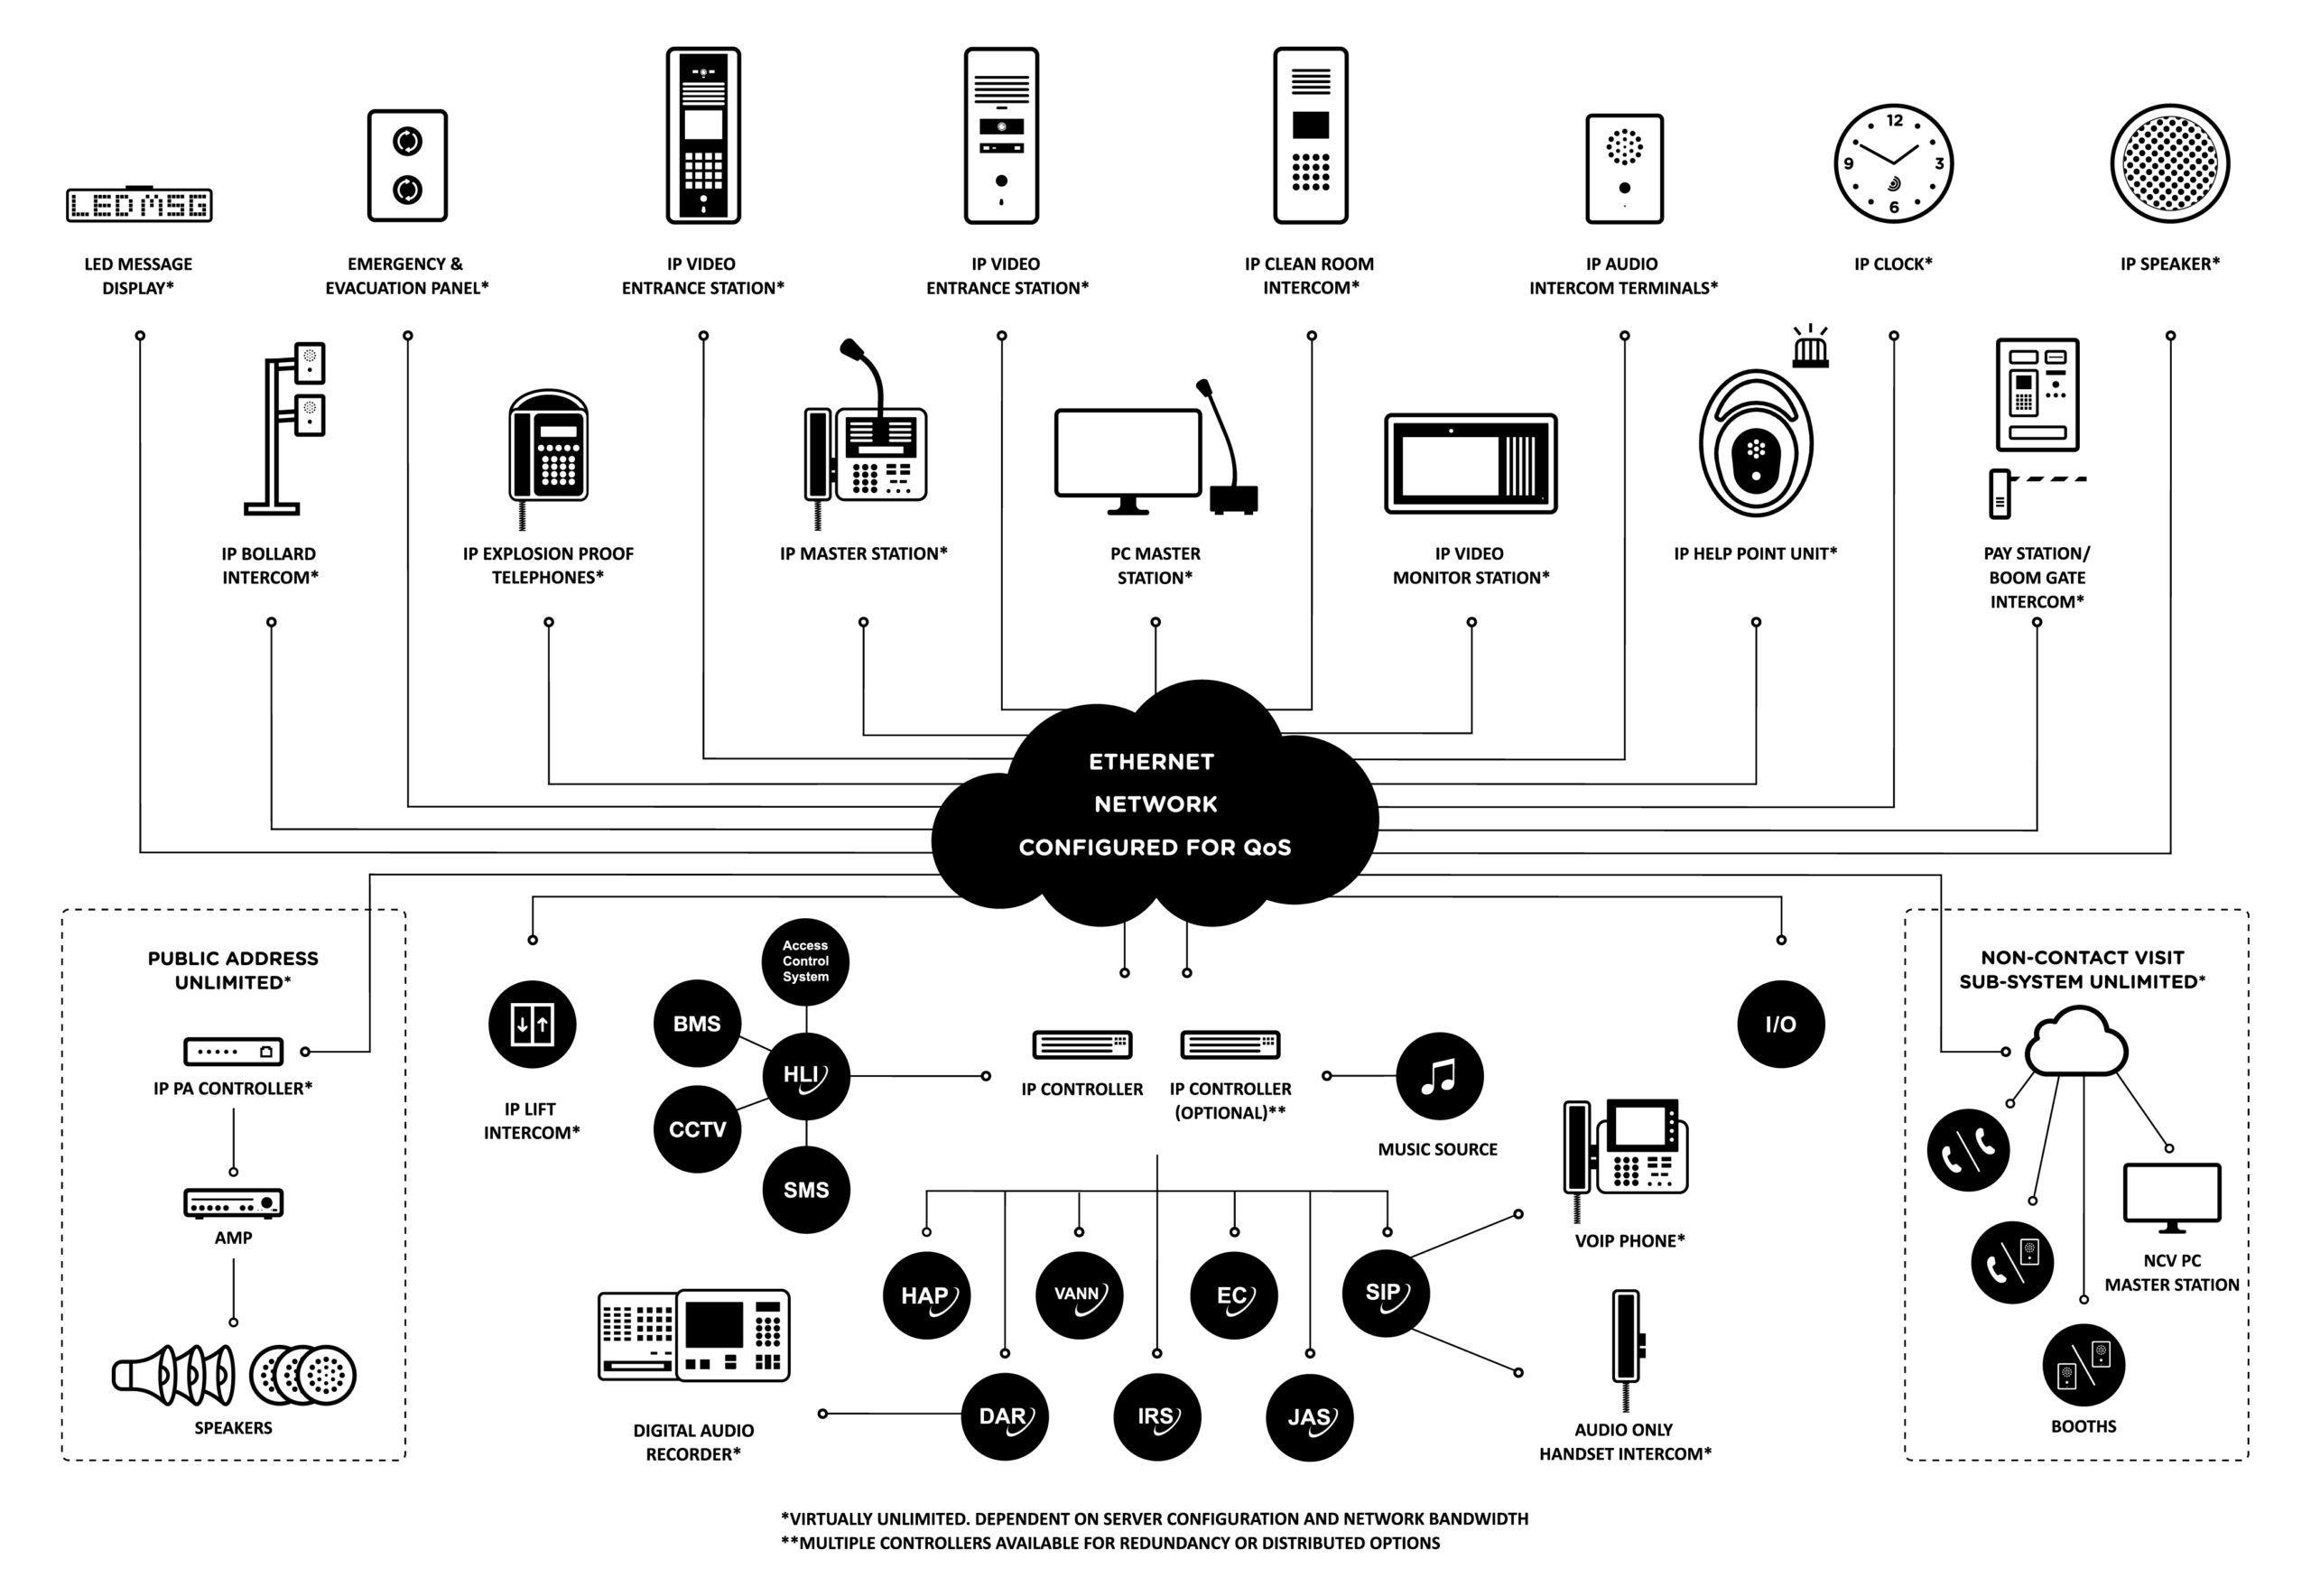 650 series IP communication system diagram